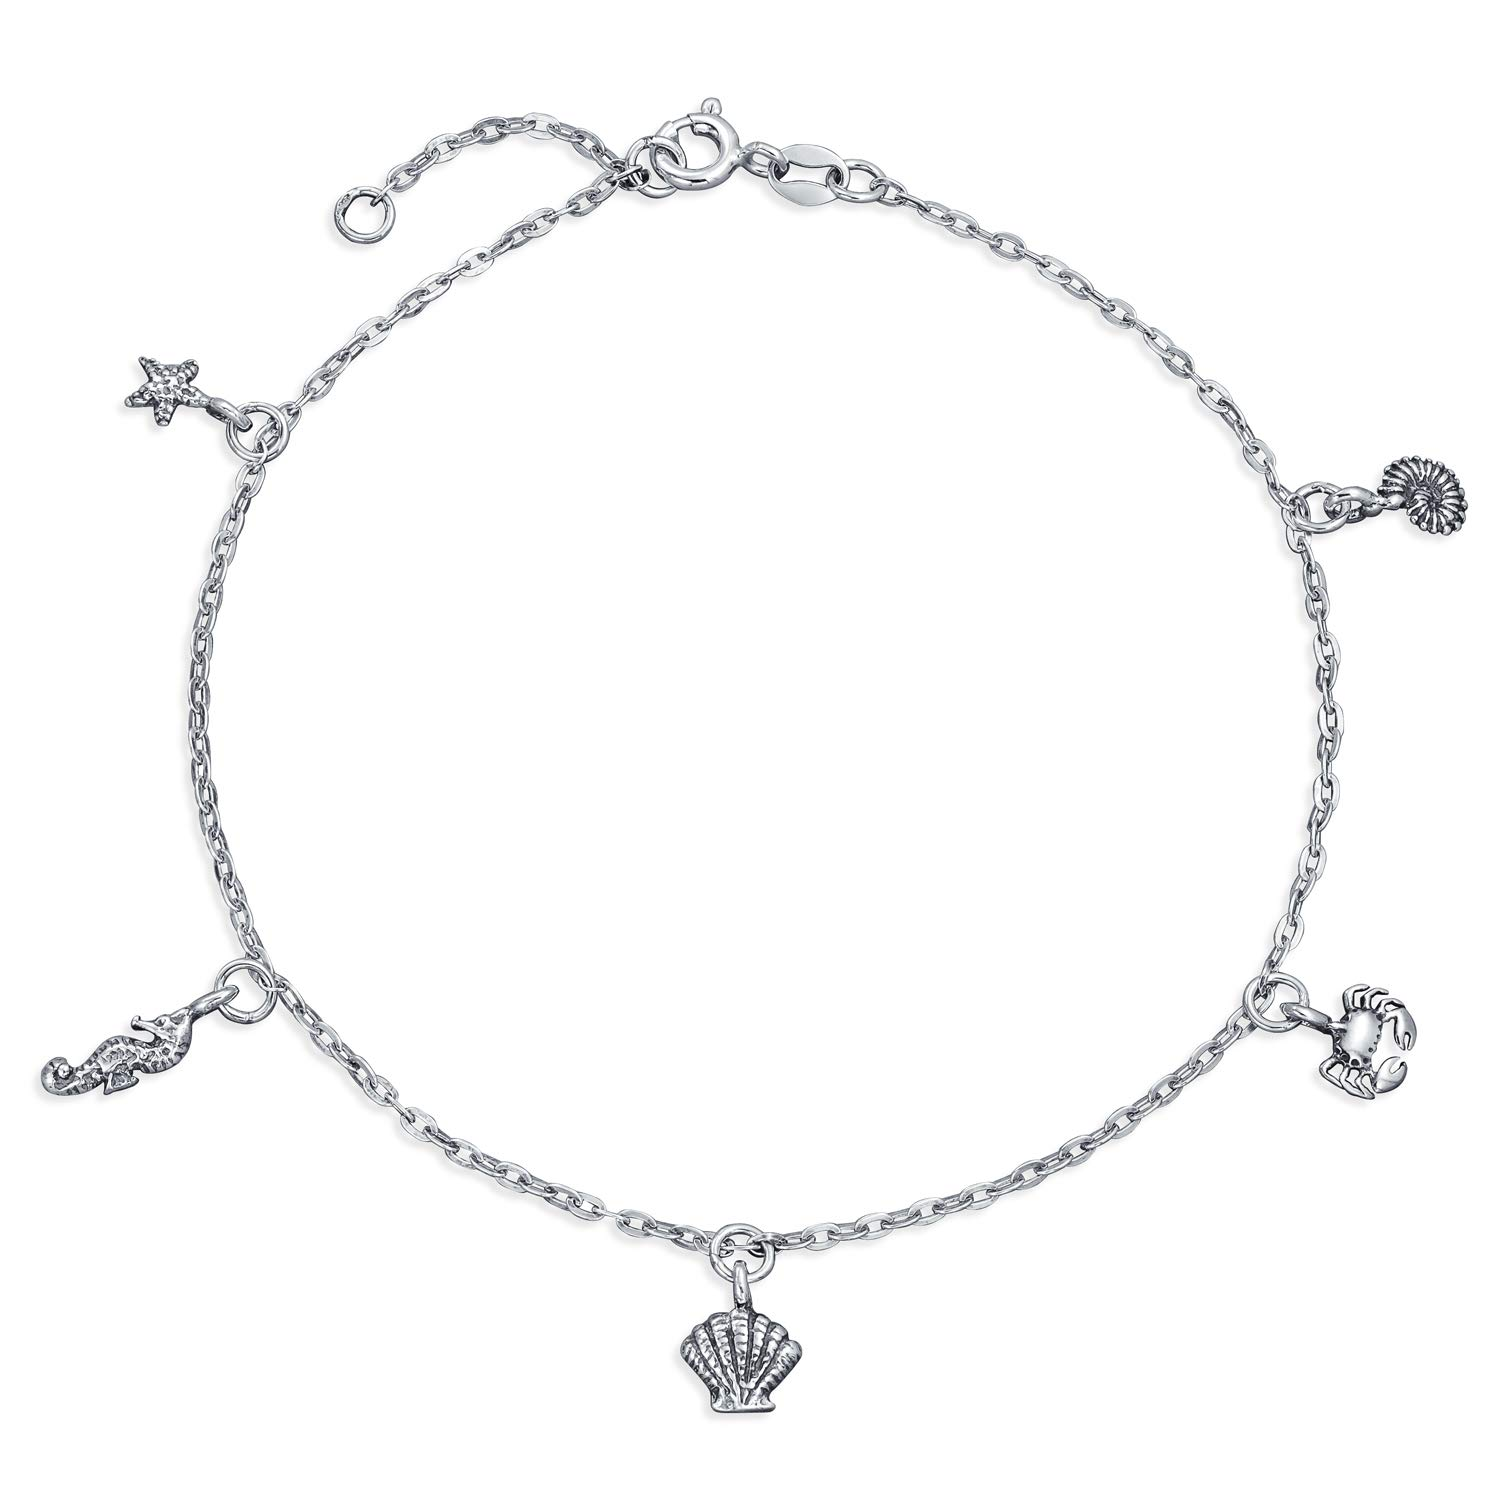 Bling Jewelry Nautical Sea Life Charm Sterling Silver Anklet 9.5 Inch PMR-A10006